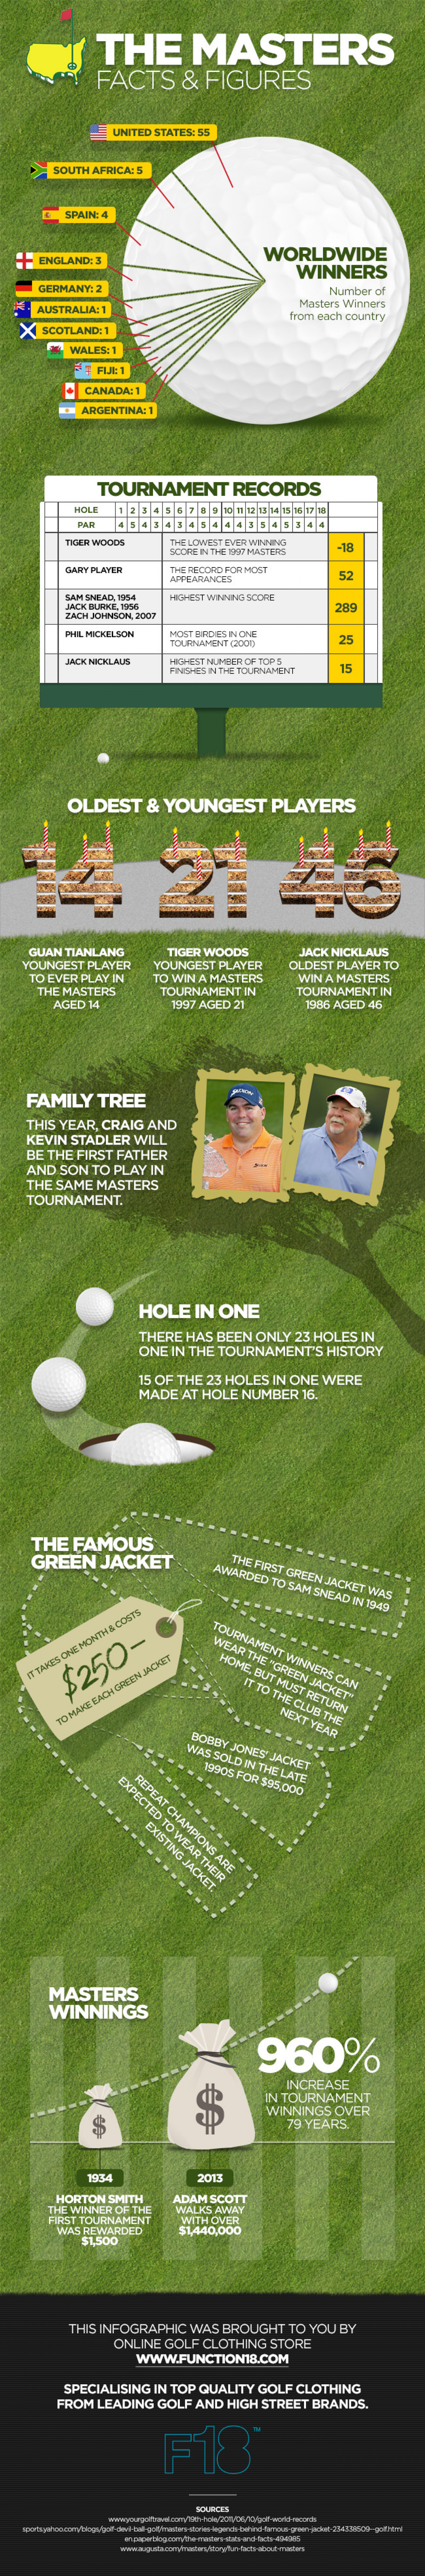 Masters Facts and Figures   Infographic